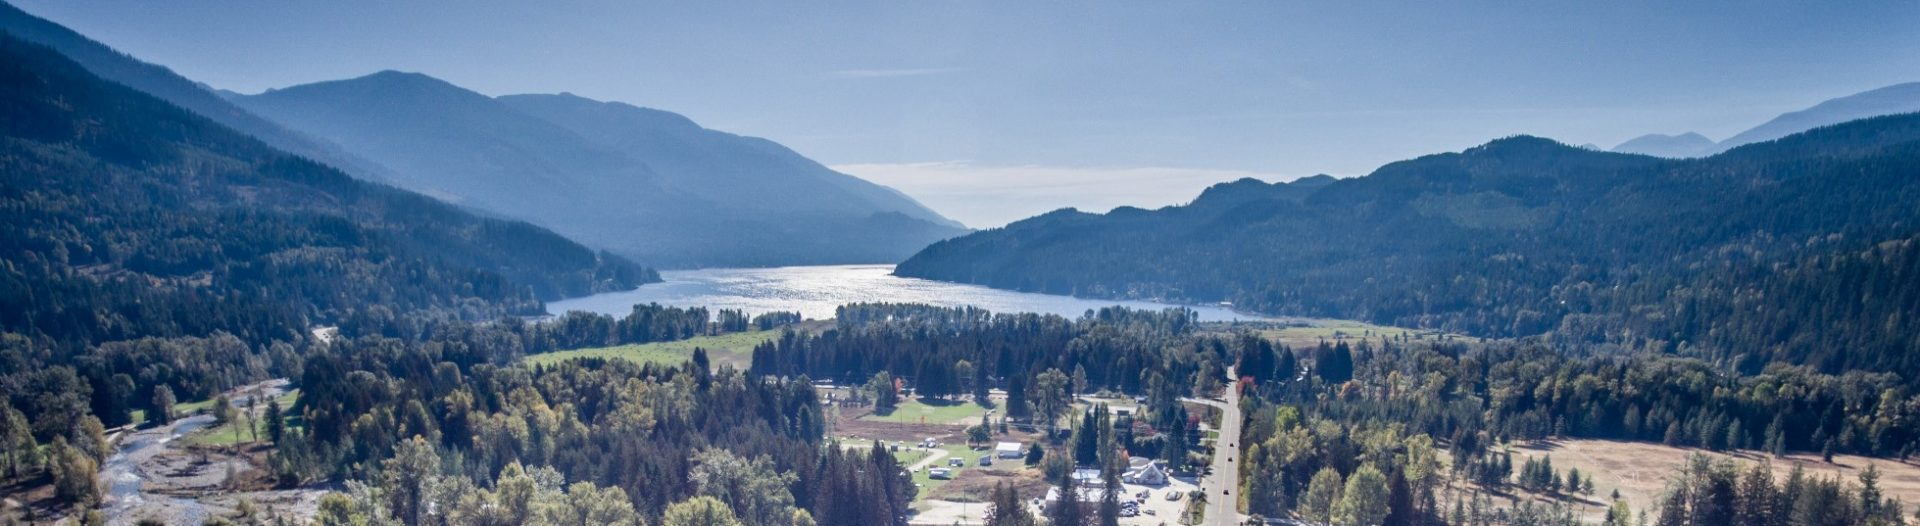 Creston Valley - Kootenay Lake Economic Action Partnership